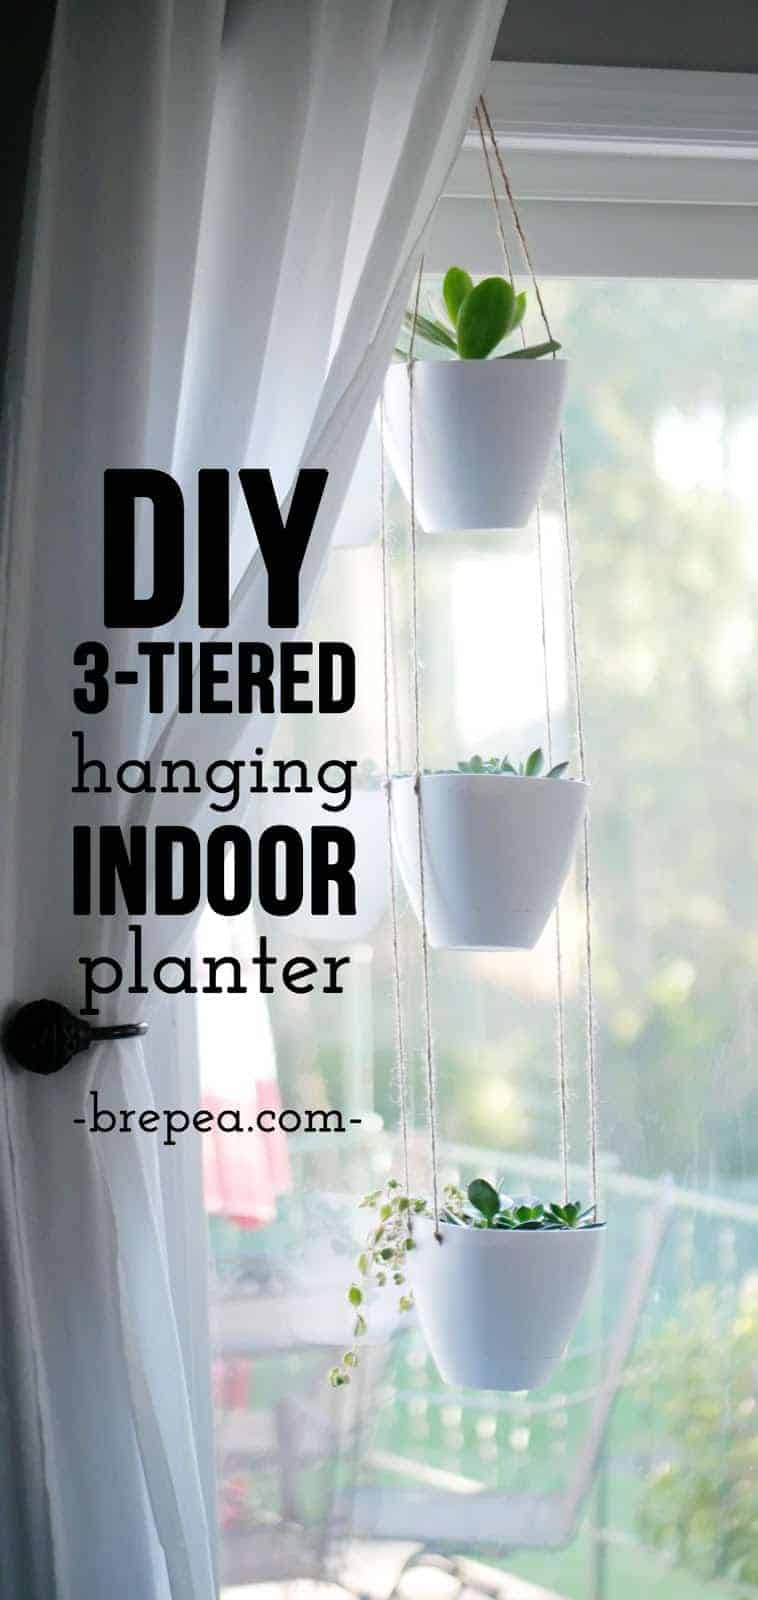 This DIY hanging planter tutorial is so quick and easy! Plus, it's so much cheaper than other 3-tiered planters.